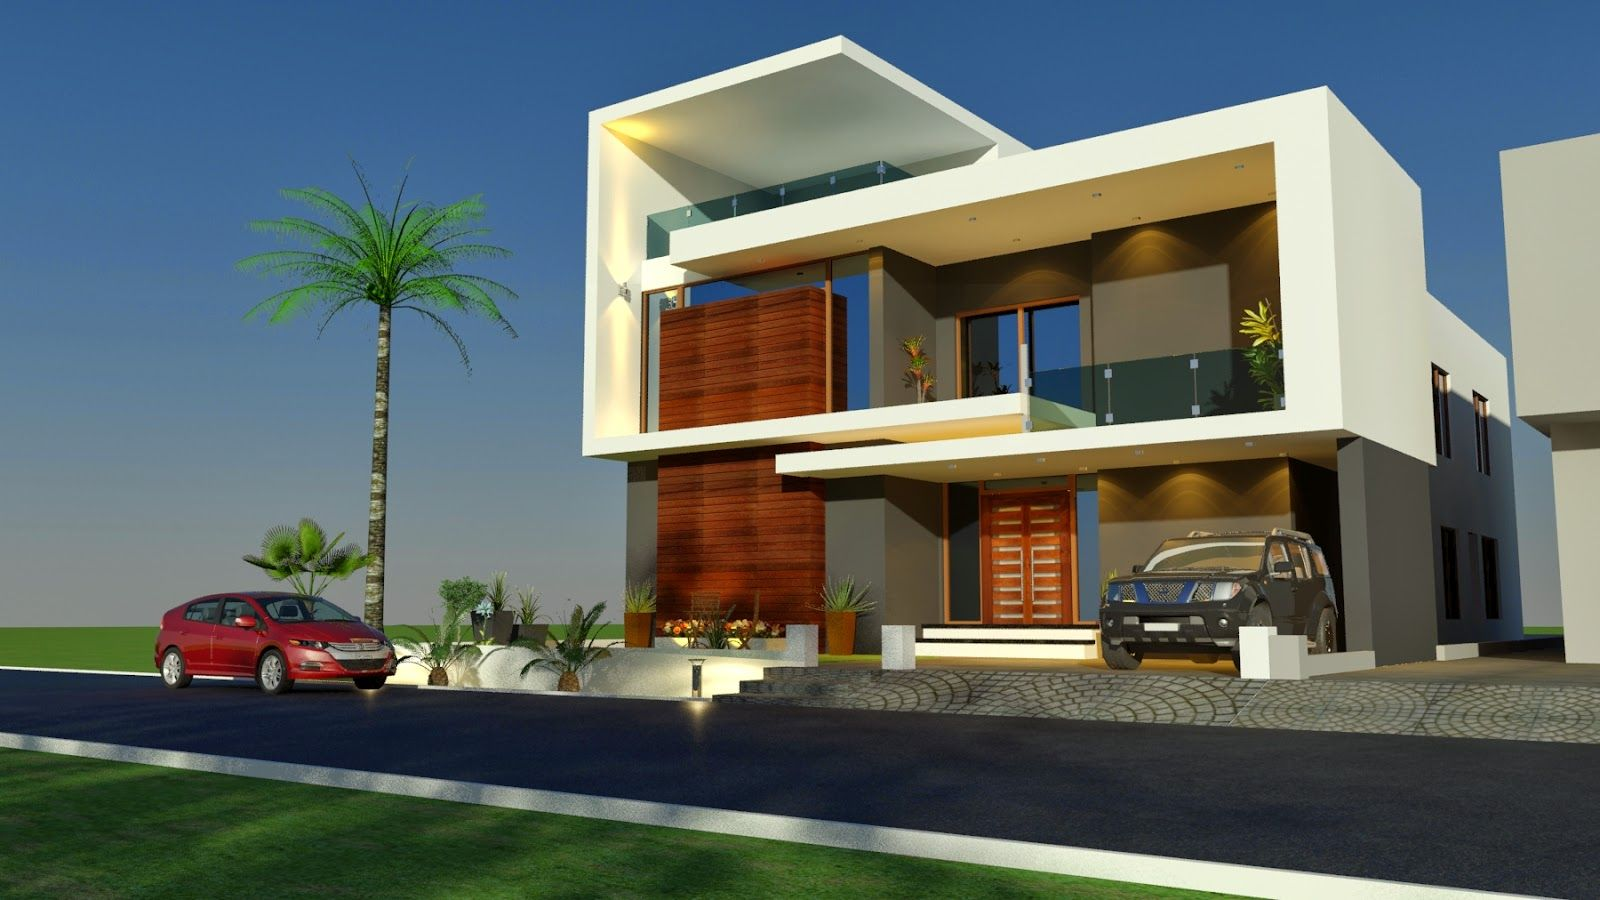 House design european - 3d Front Elevation Com House Home Contemporary Modern Villa Modern